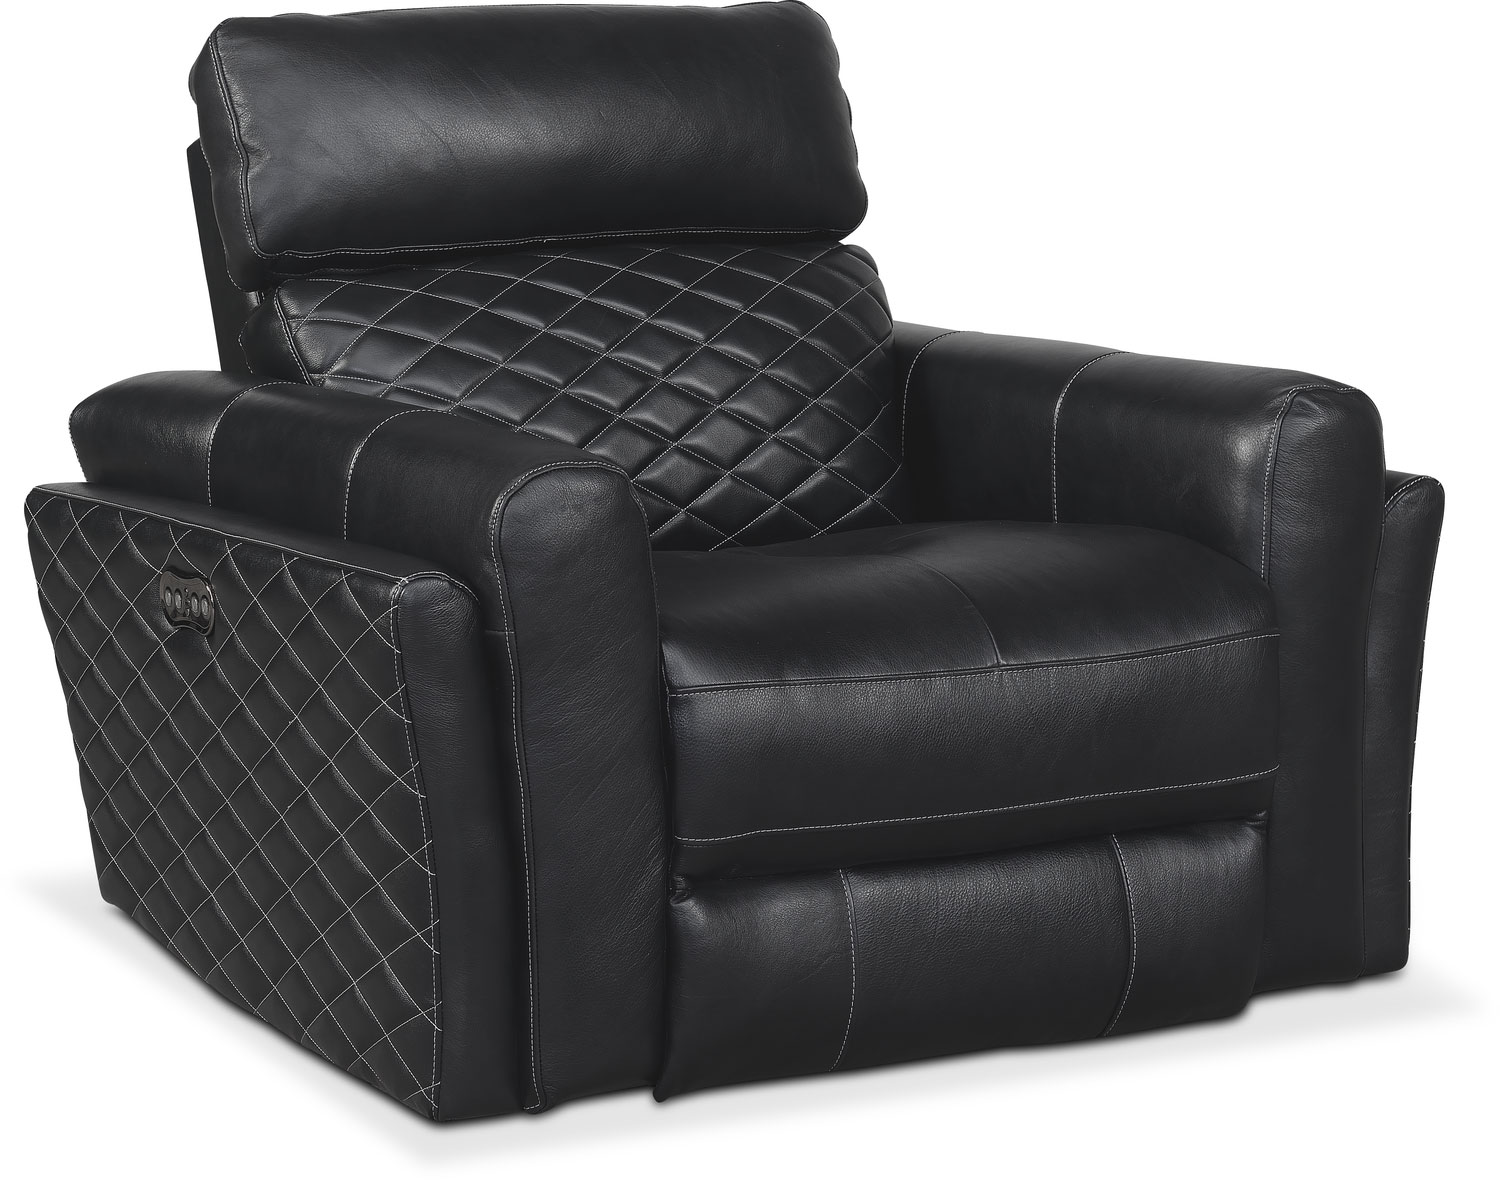 Catalina Power Recliner - Black